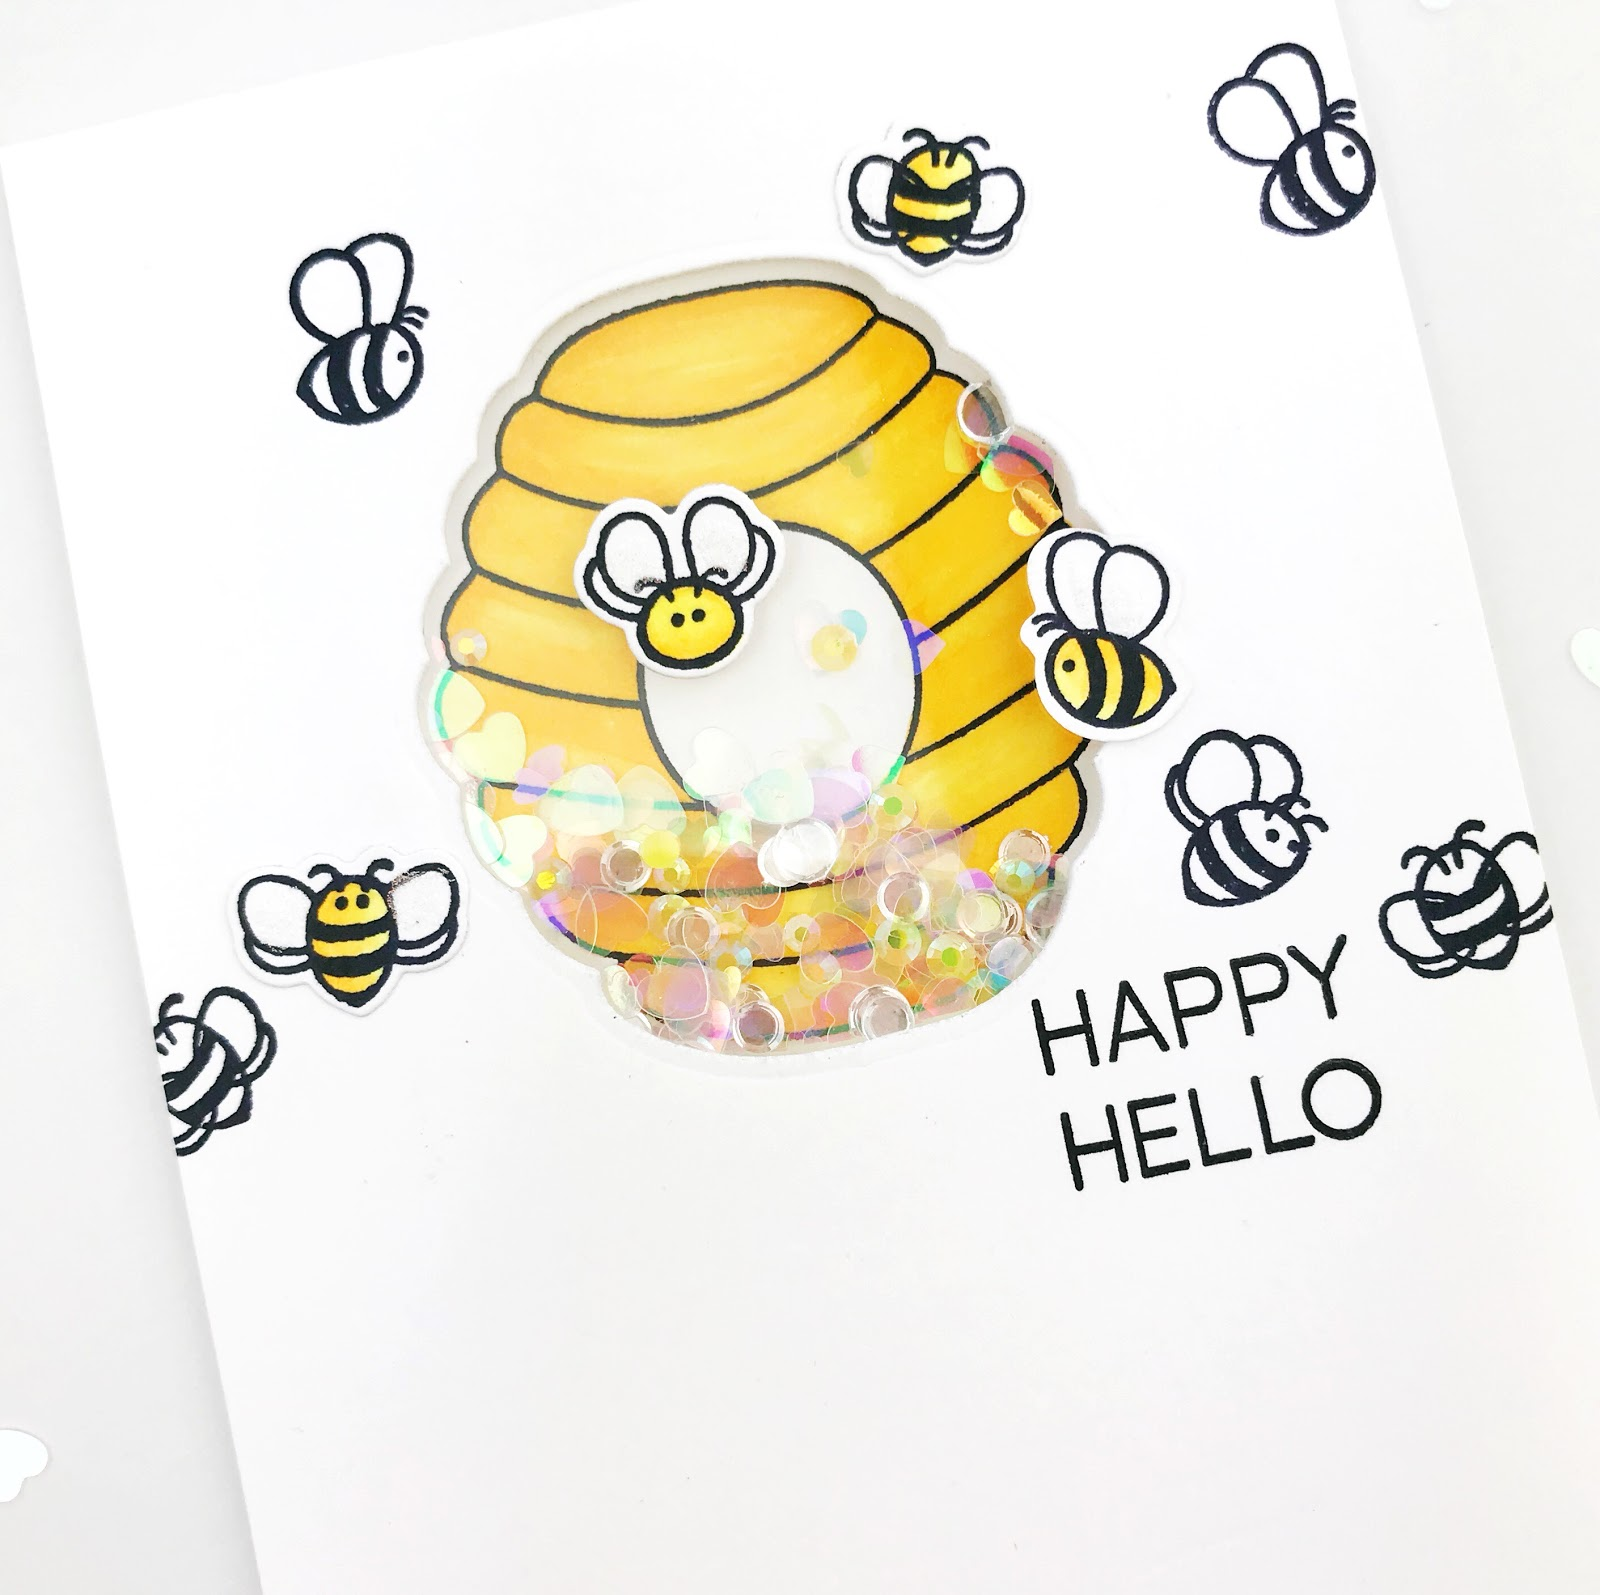 carly tee bitty bee shaker cards honey bee sneak peeks day 1 Water Sources for Bees this shaker card has the bee hive st ed copic colored on the front the shaker panel placed over top and lots of bitty bees added